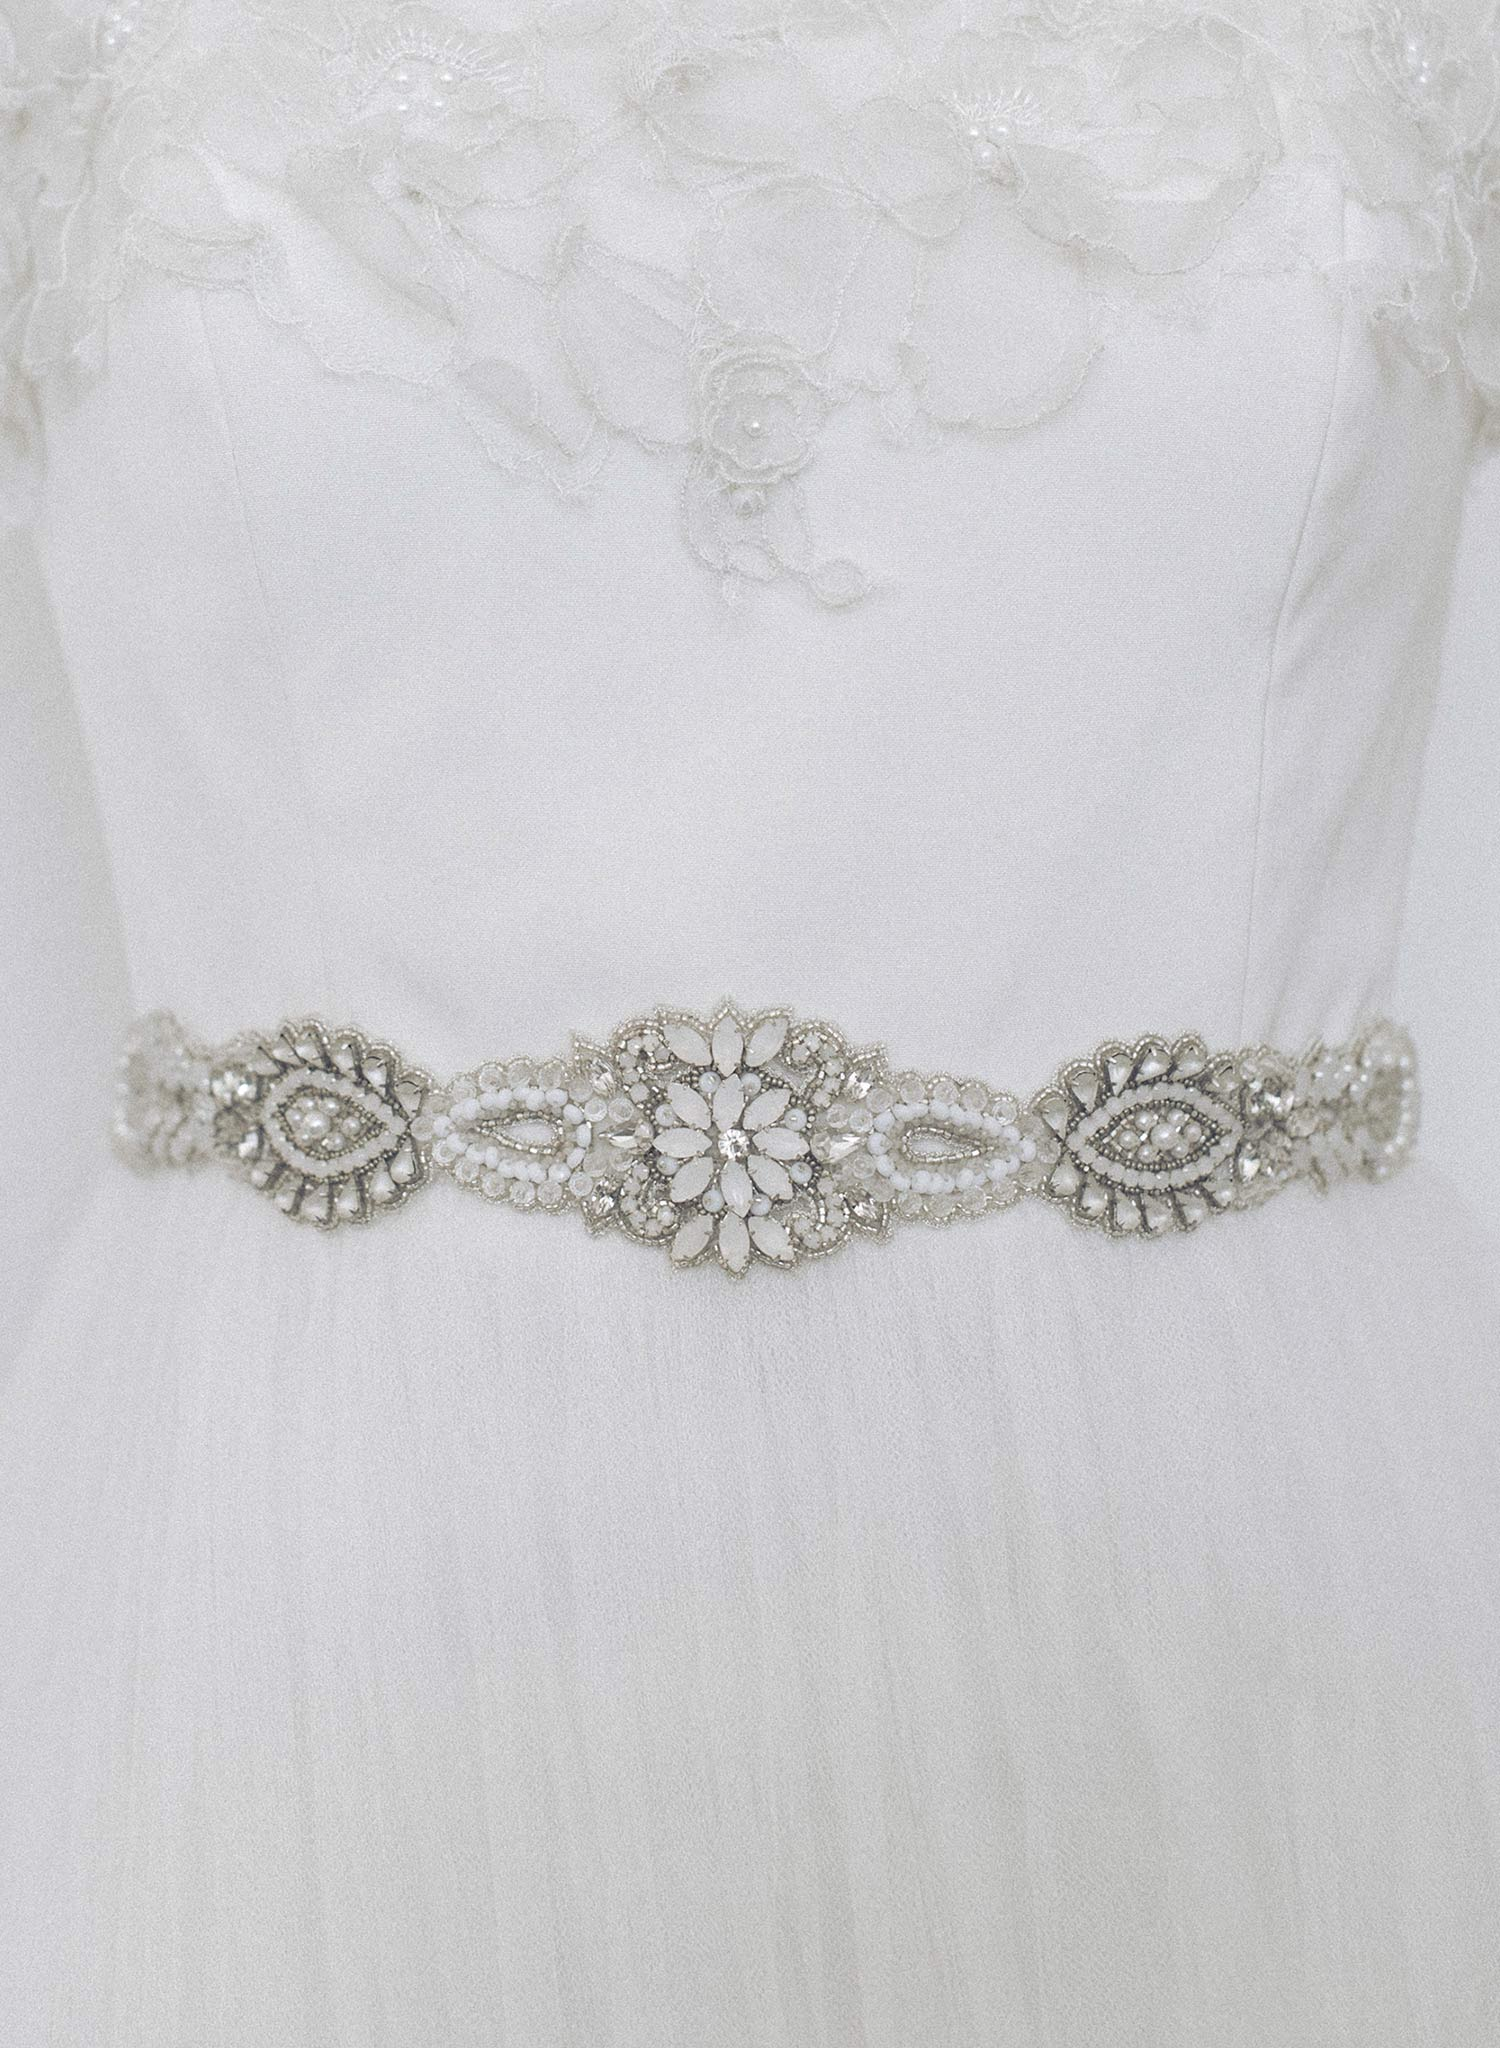 Infinity opal and clear crystal embroidered sash - Style #962